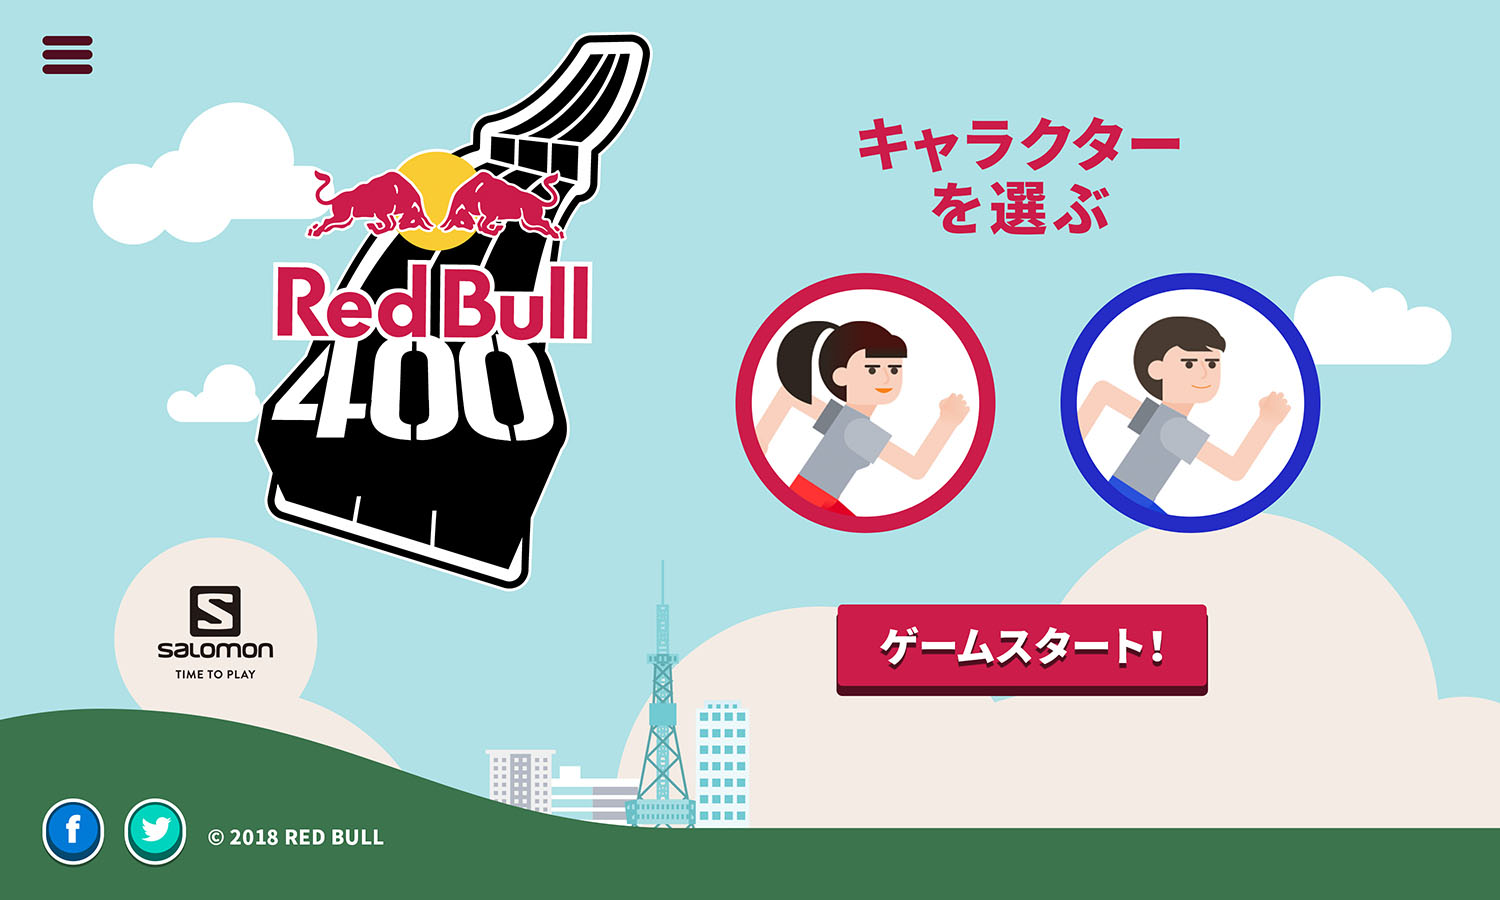 Red Bull 400 Game